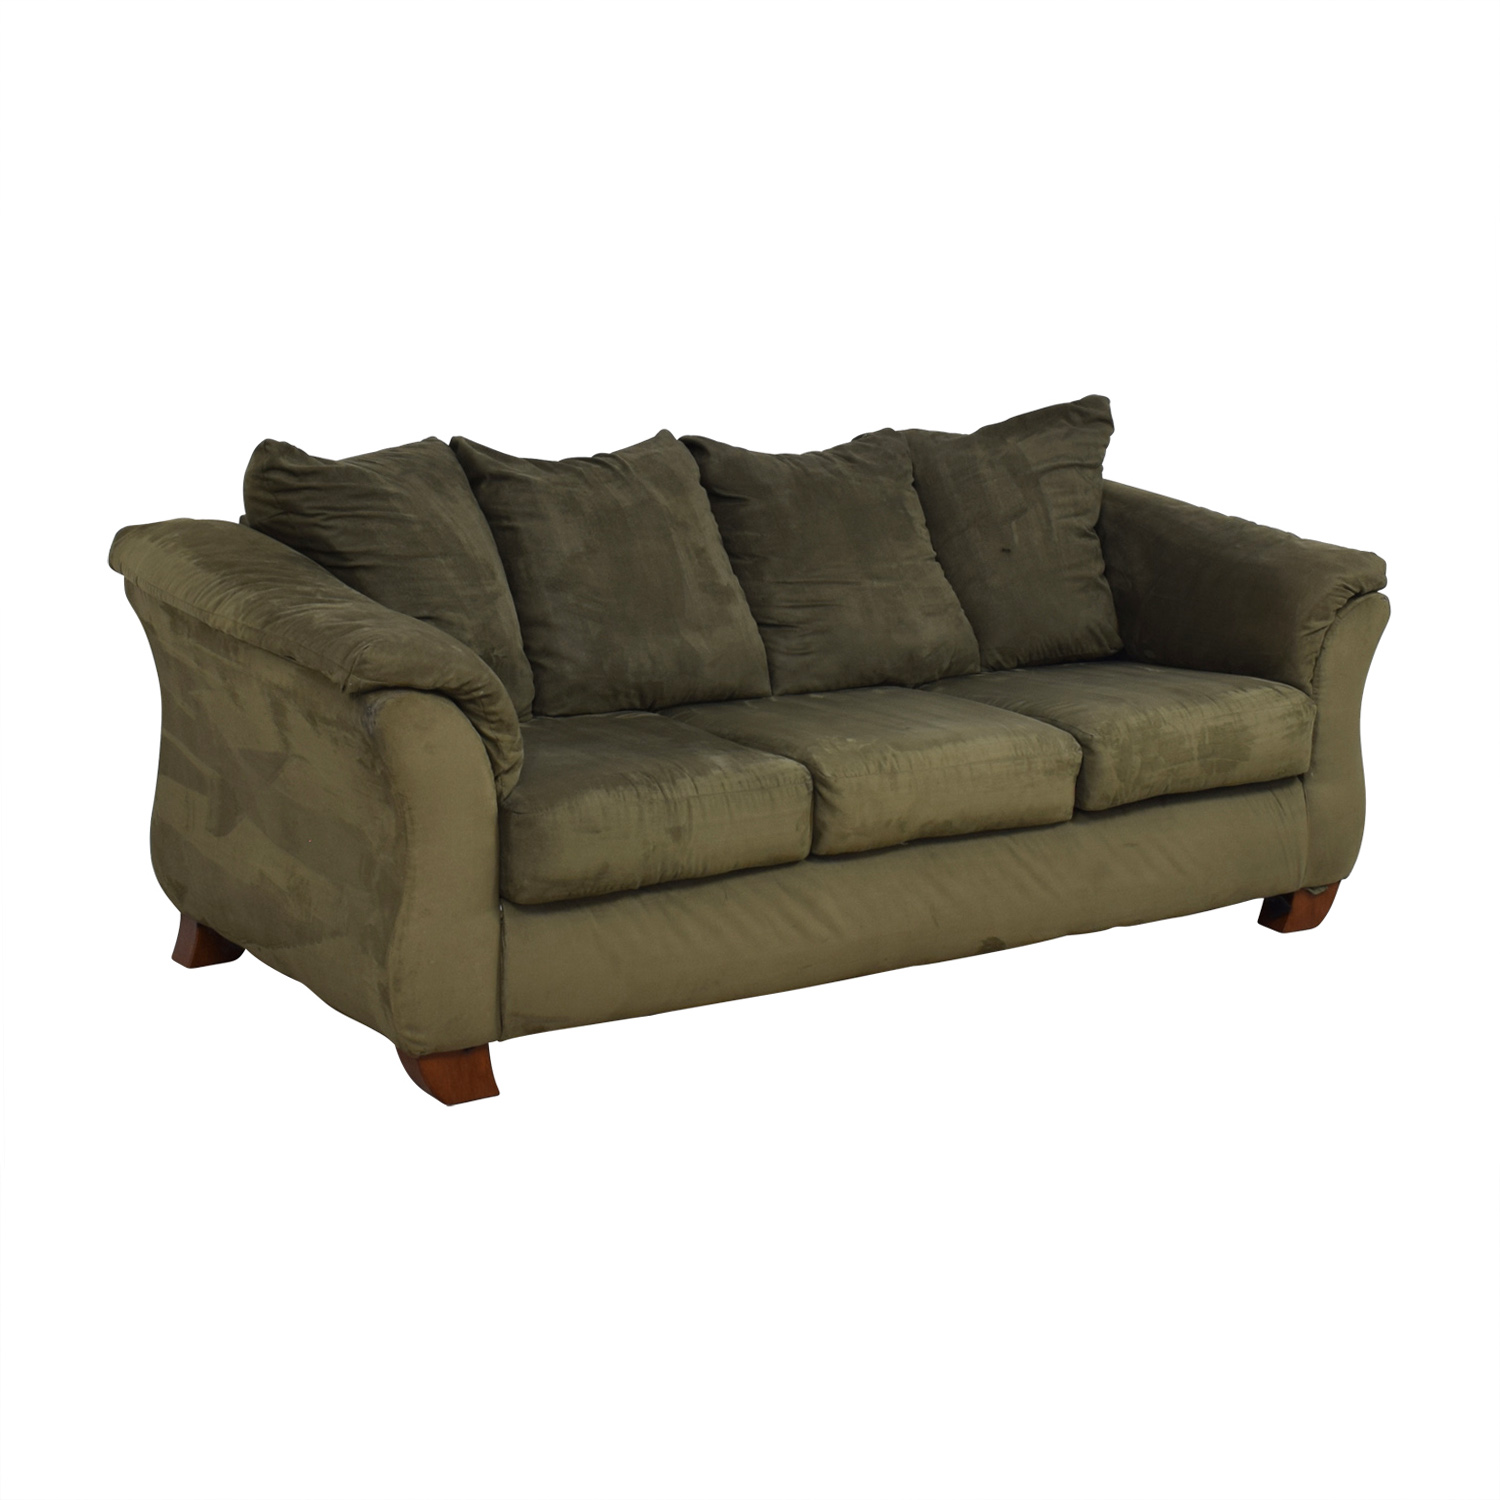 Ashley Furniture Ashley Furniture Forest Green Three-Cushion Couch for sale